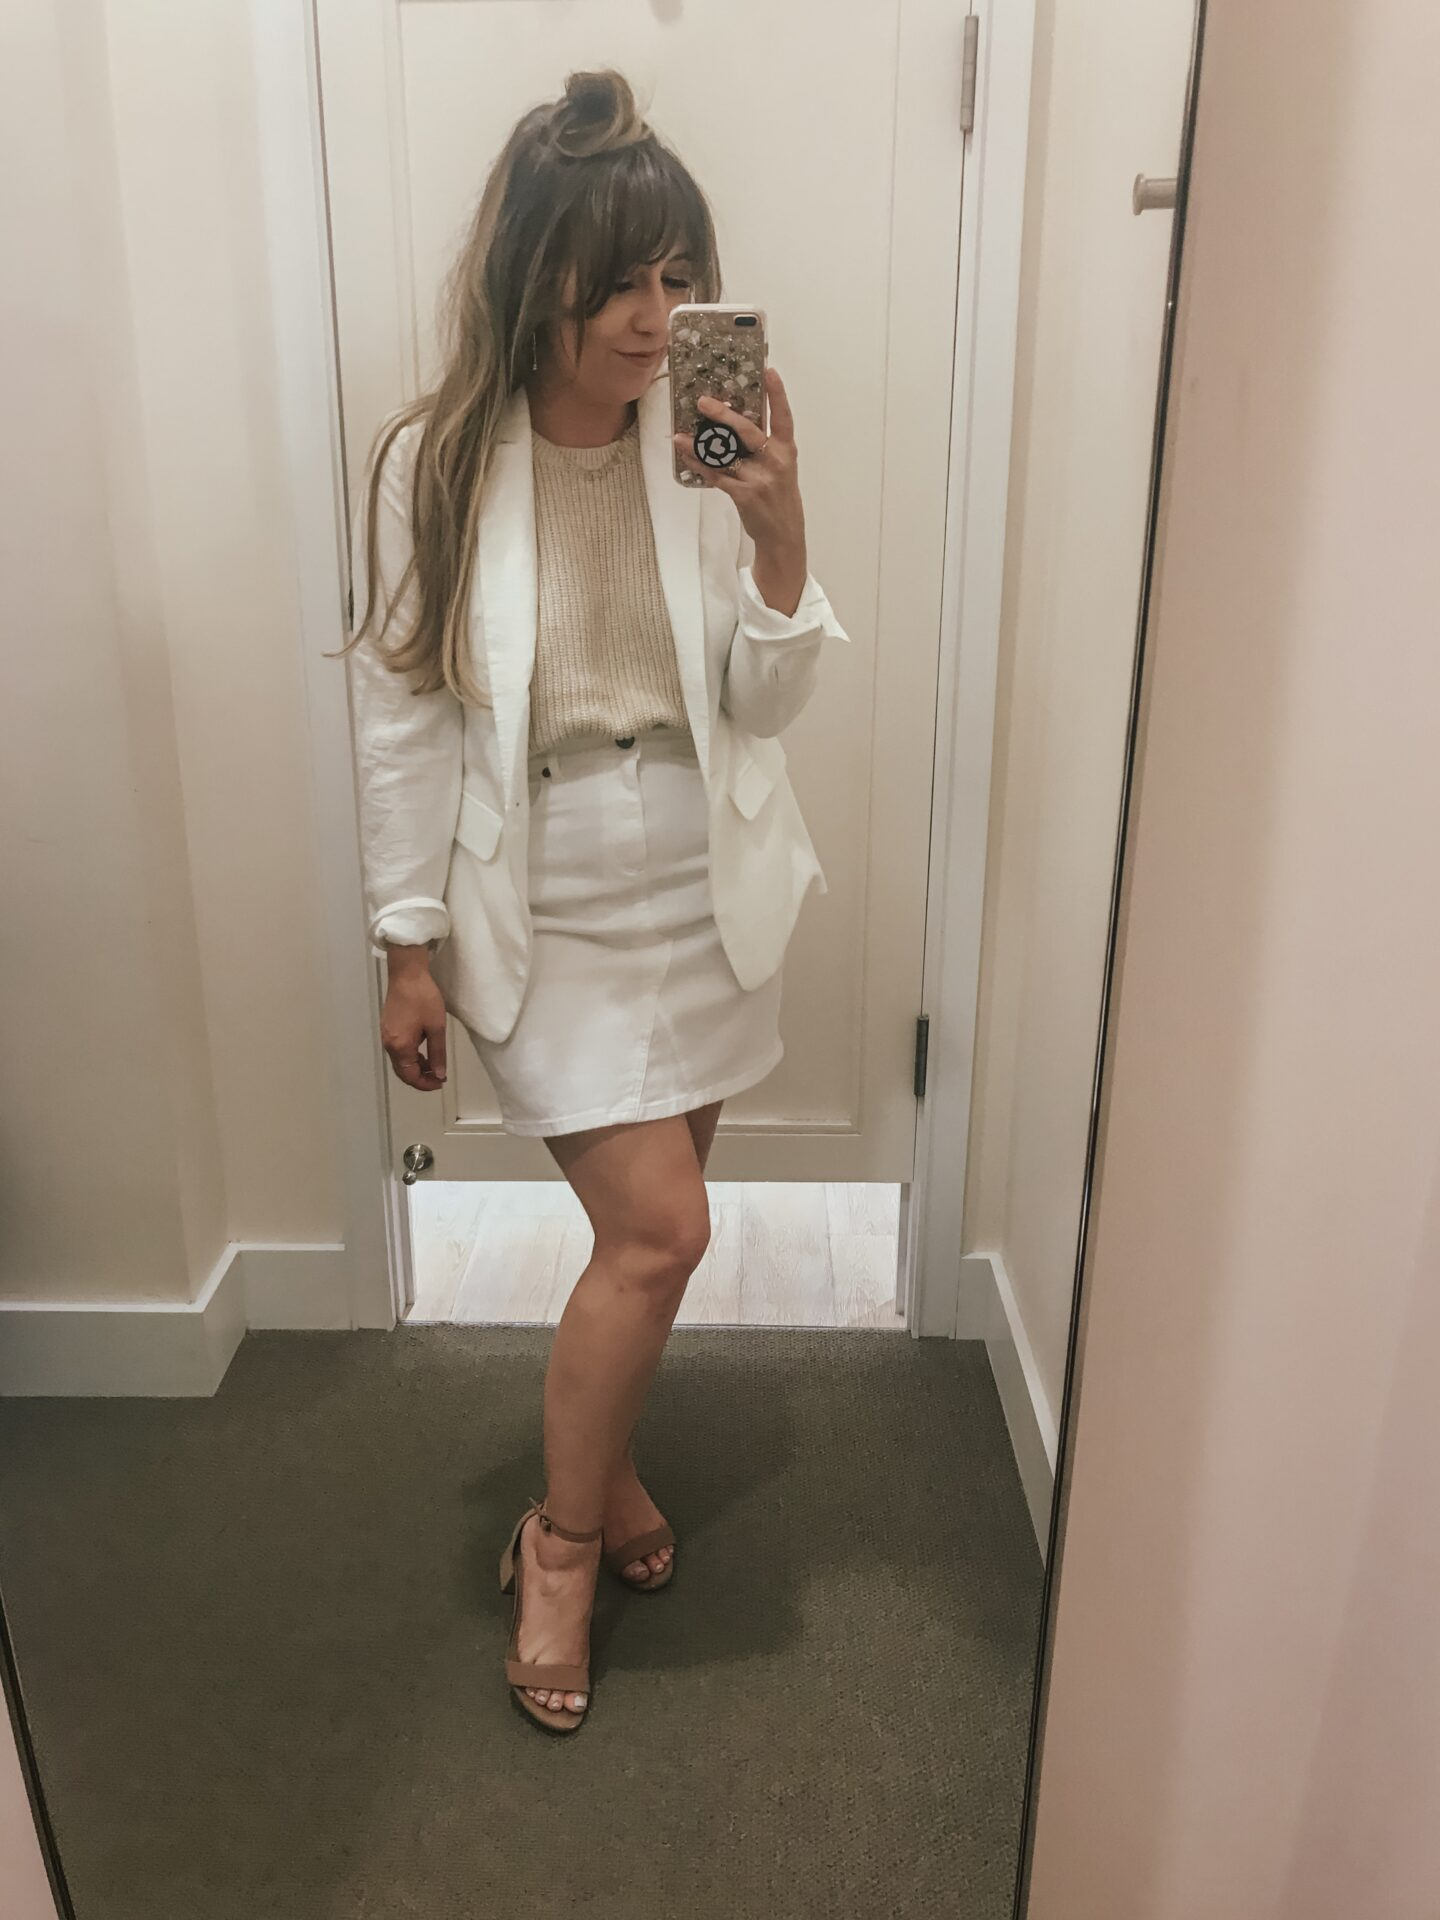 LOFT Spring - white denim skirt and blazer outfit